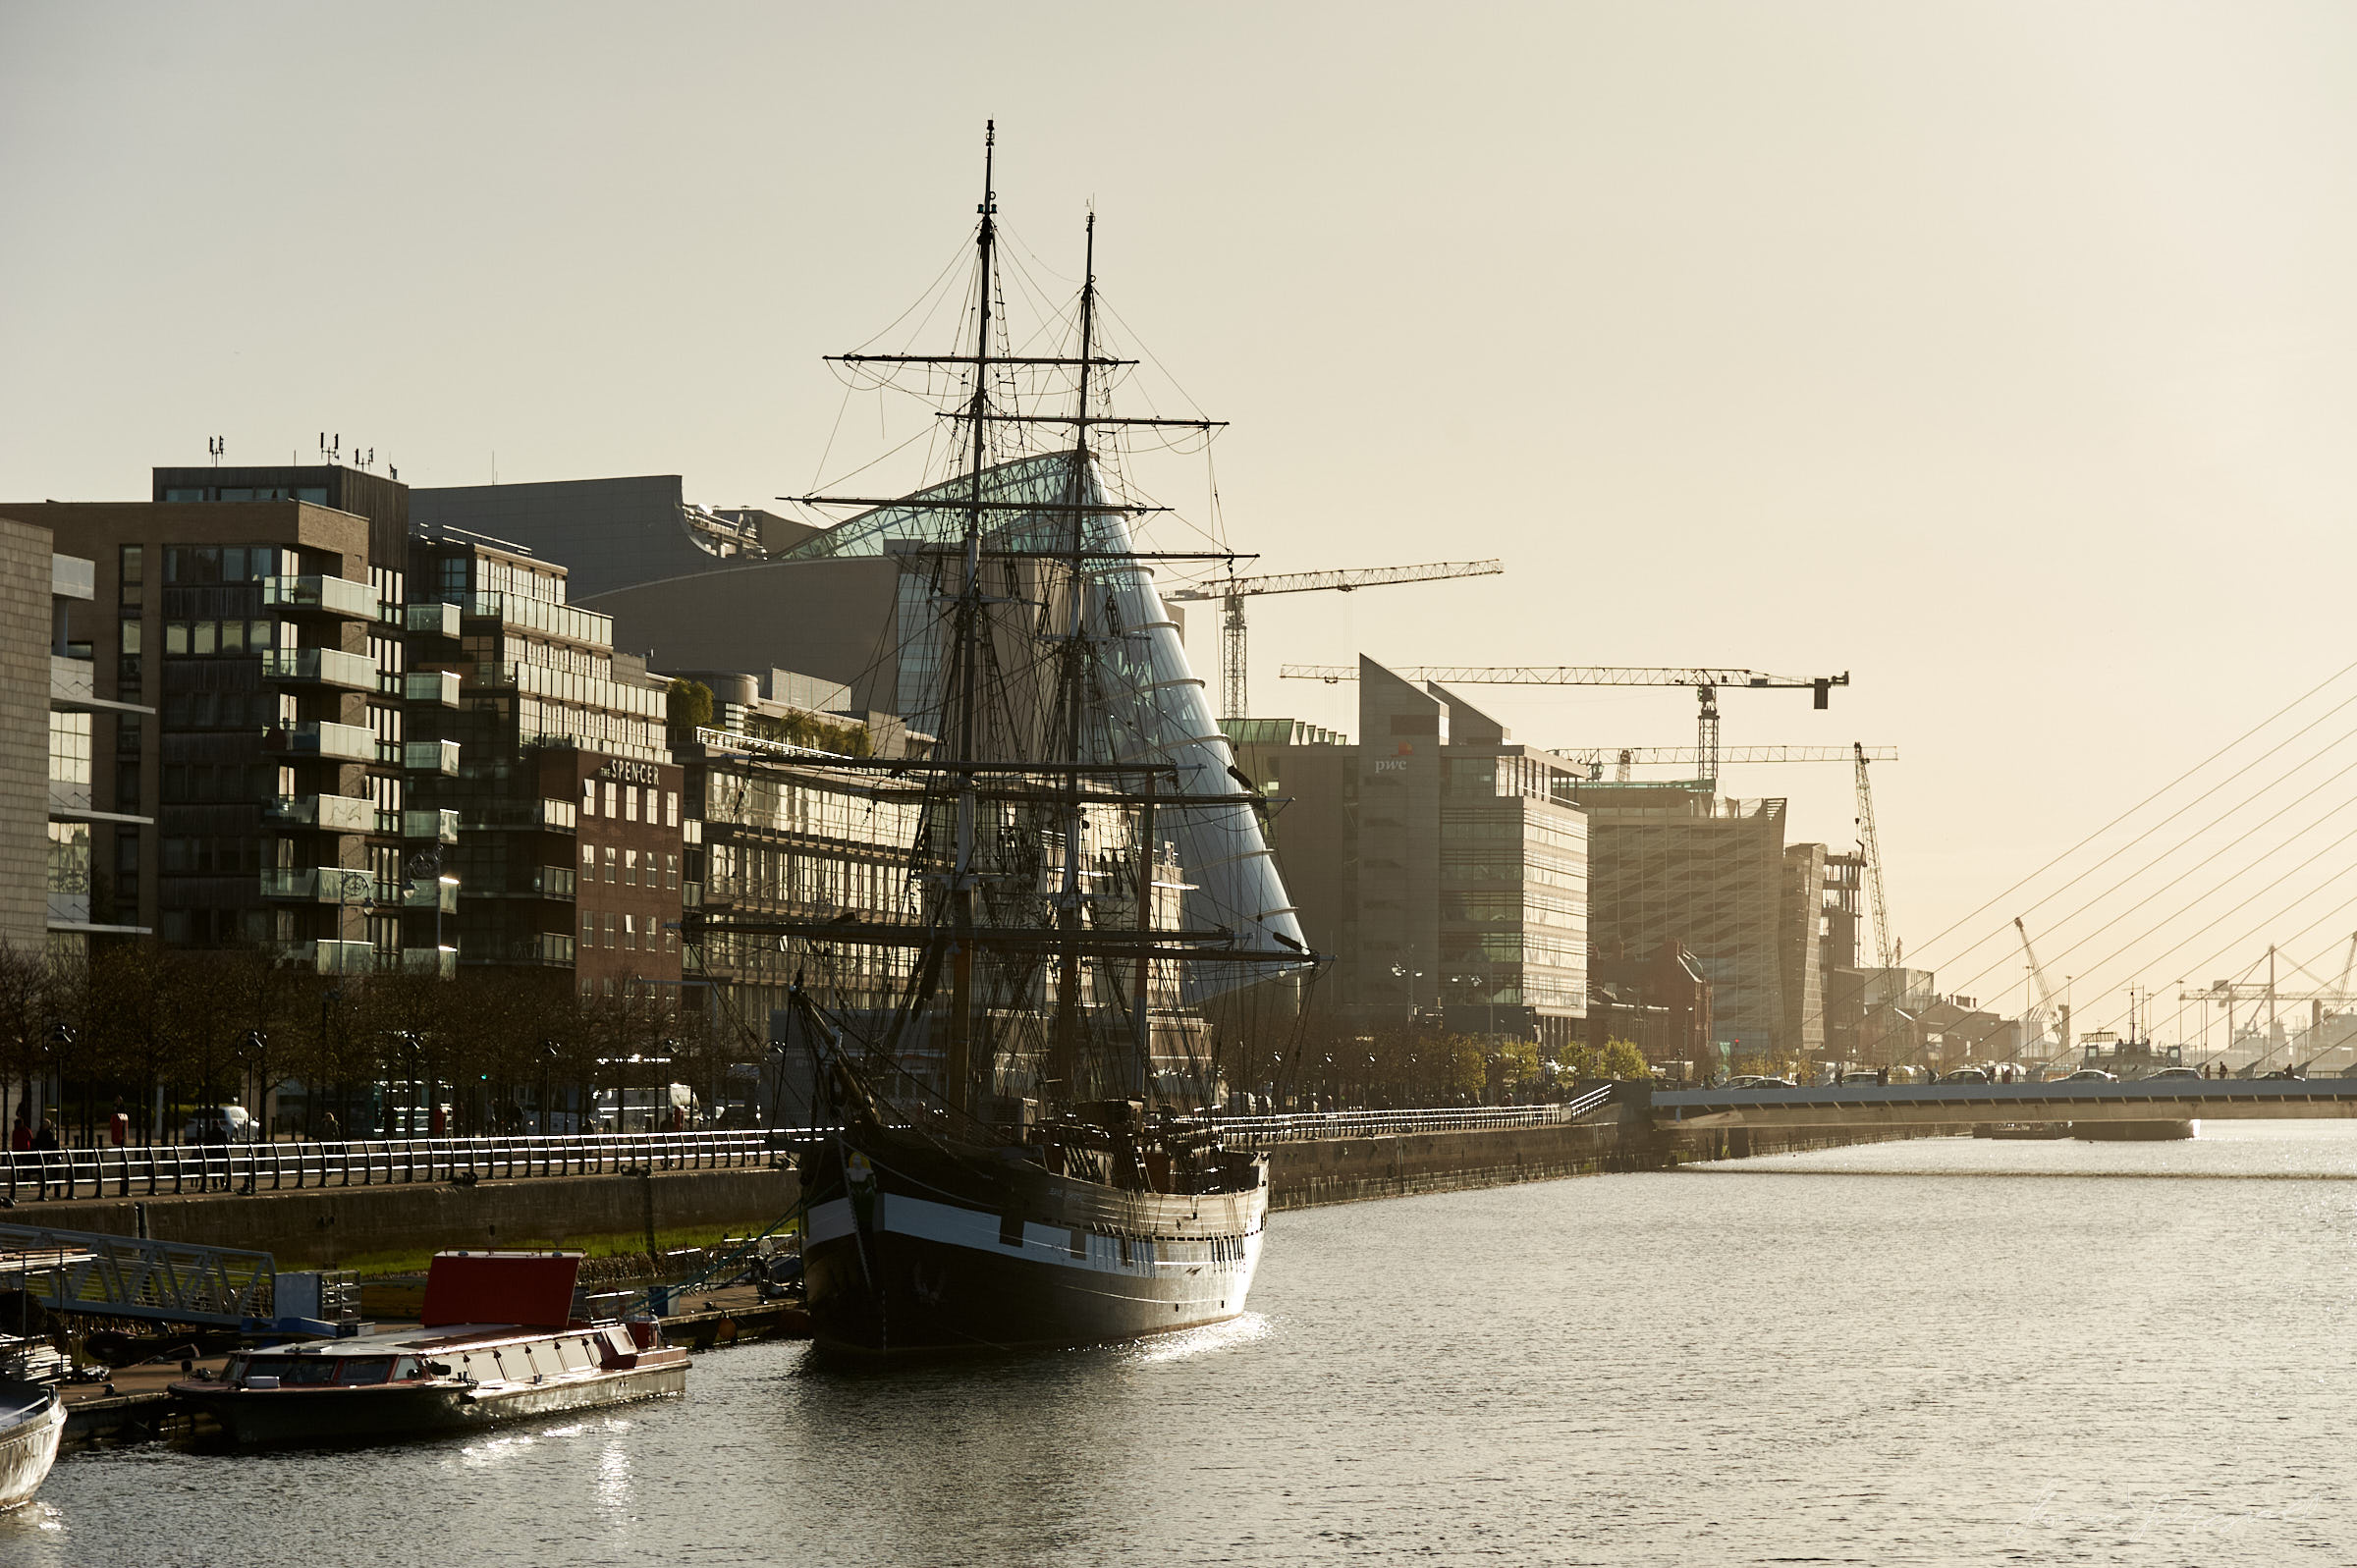 Ship moored by the walls of the river Liffey in Dublin